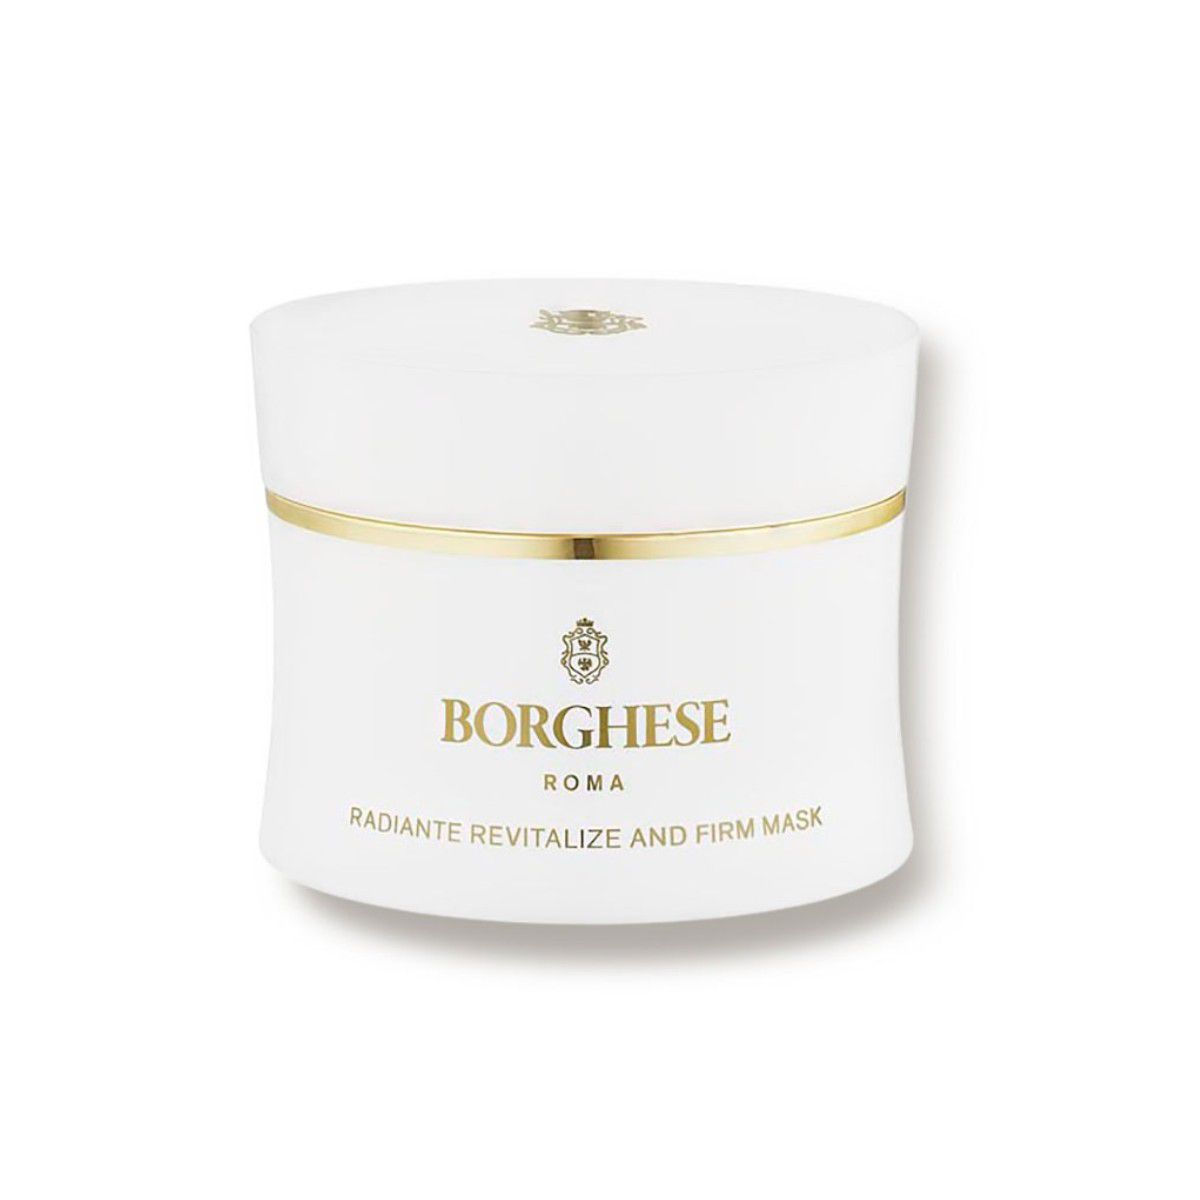 Borghese Roma Radiante Revitalize and Firm Mask